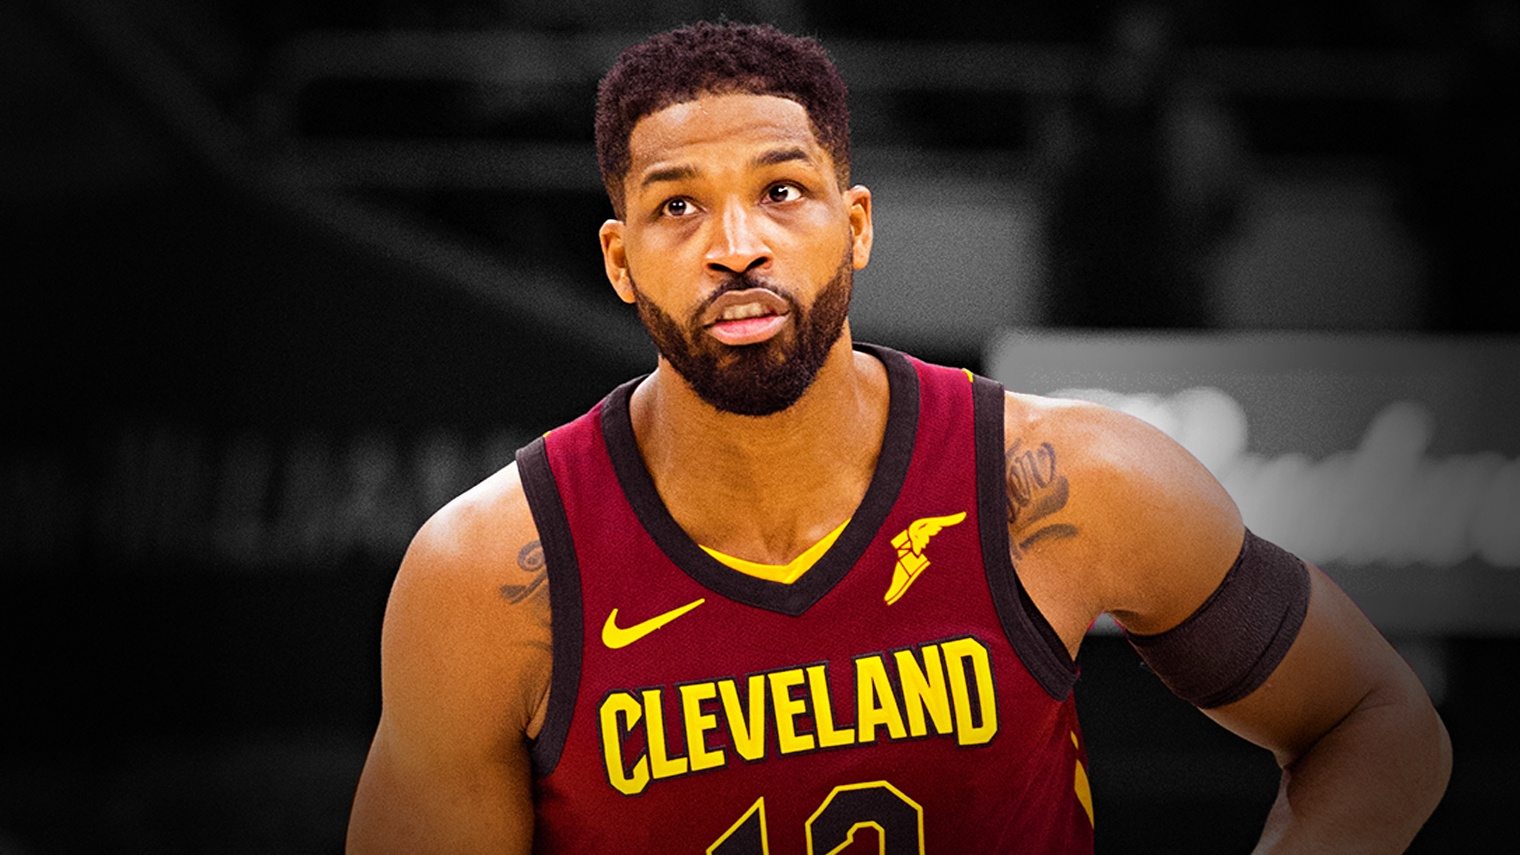 Khloe Kardashian gives Tristan Thompson another chance, stays put in Cleveland